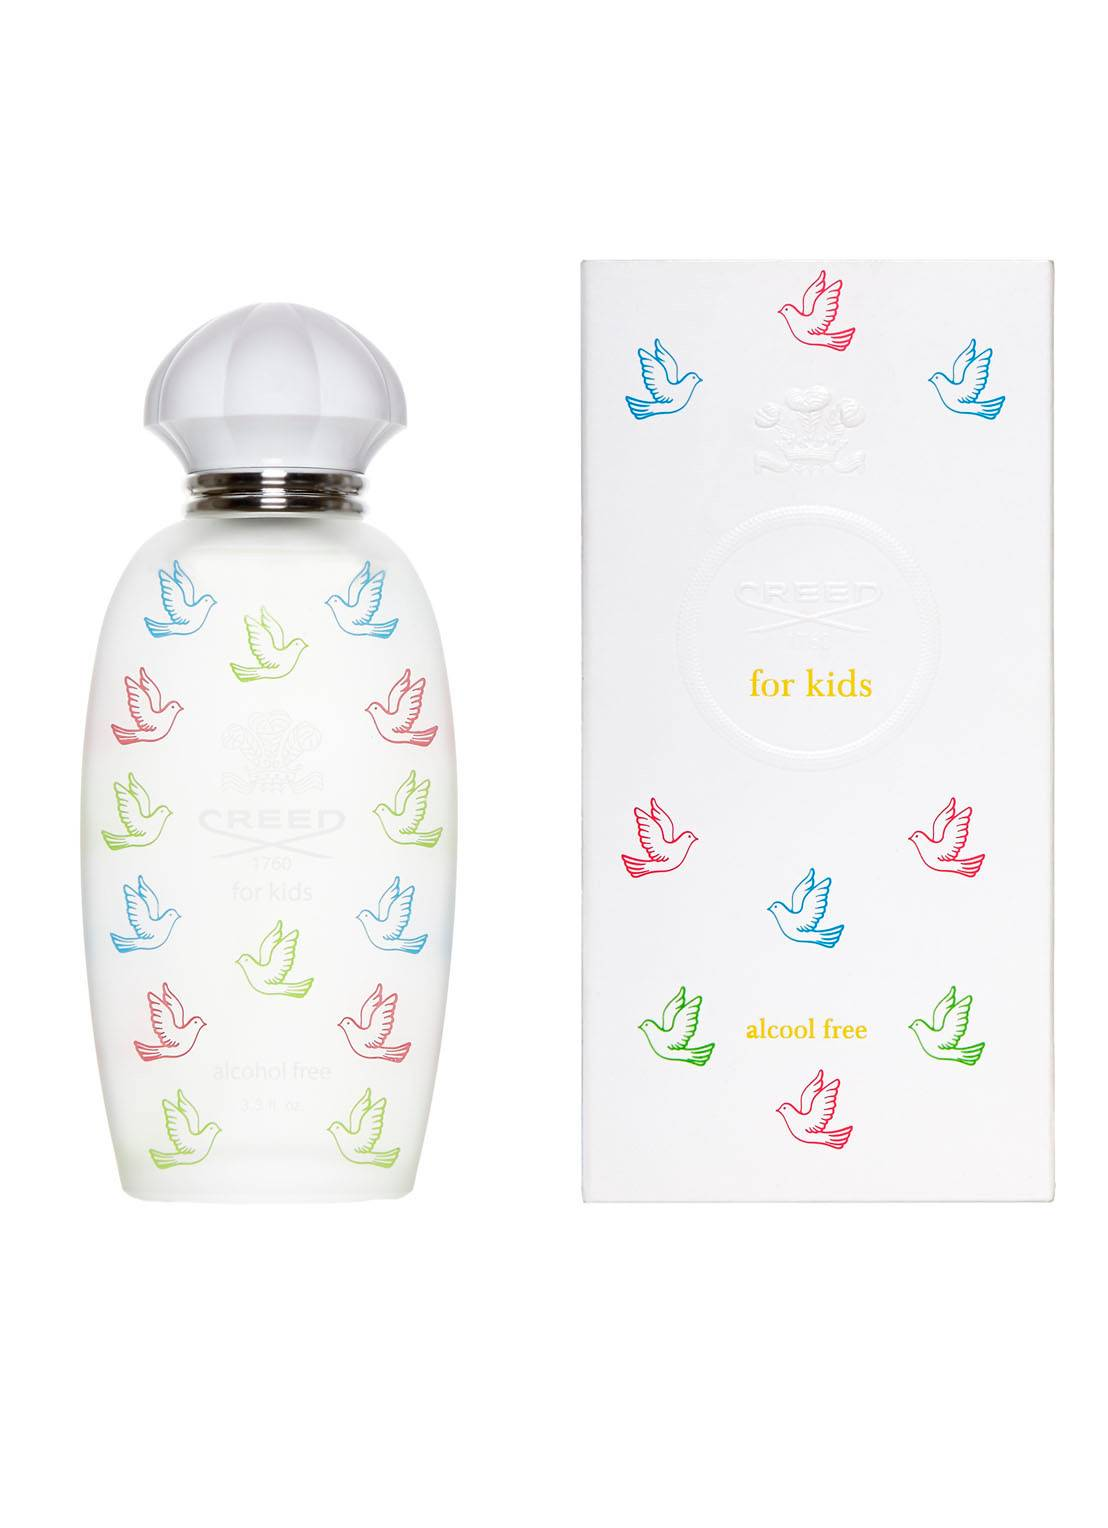 creed Eau de toilette Creed for Kids -